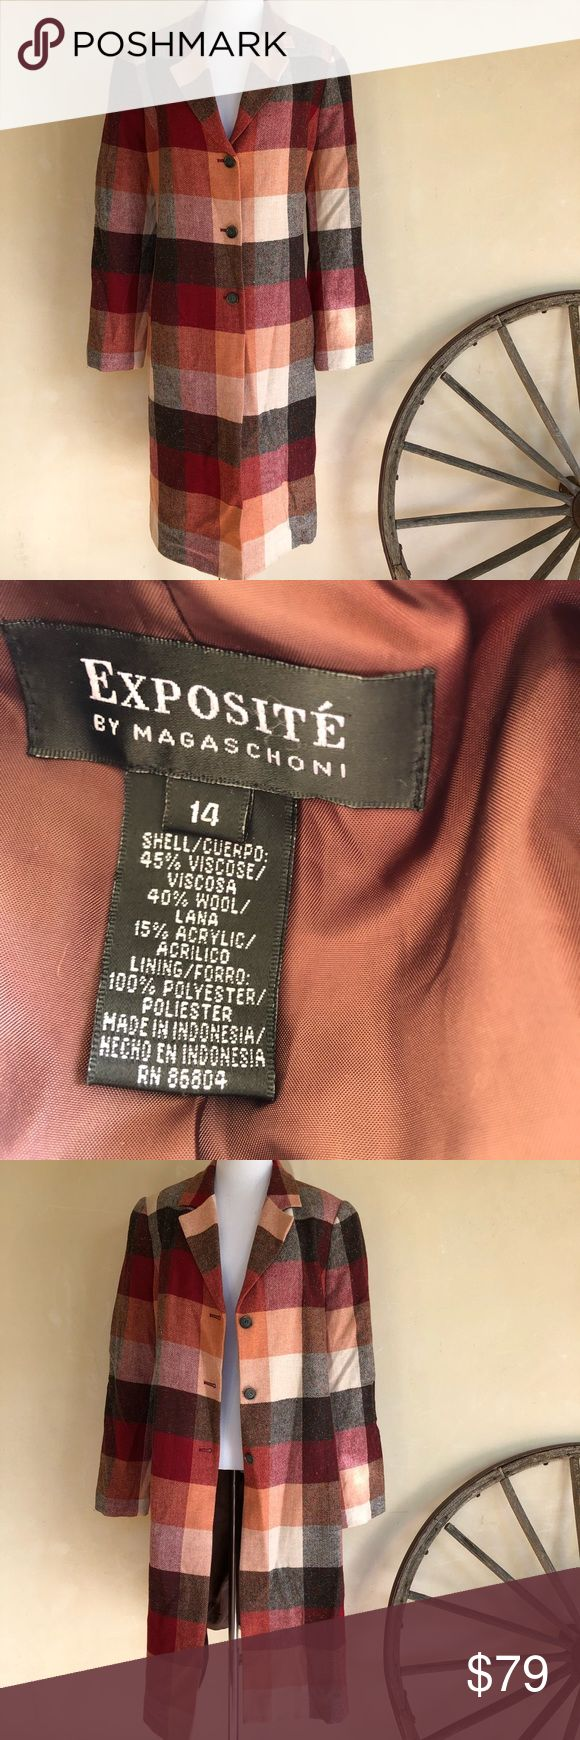 """EXPOSITE' BY Magaschoni Wool Blend Long Coat NWOT EXPOSITE' BY Magaschoni Wool Blend Herringbone Color Blocked Lined Coat. Woman's Sz 14. NEW WITHOUT TAGS. Measurements: Across shoulders: 16.5"""" Armpit to armpit: 23"""" Sleeve length: 25"""" Total length: 41"""" NEW WITHOUT TAGS as the weather is to warm here in SoCal for this coat. I️ purchased but never wore. From a Smoke Free home. Please see pictures. Exposite by Magaschoni Jackets & Coats Trench Coats"""